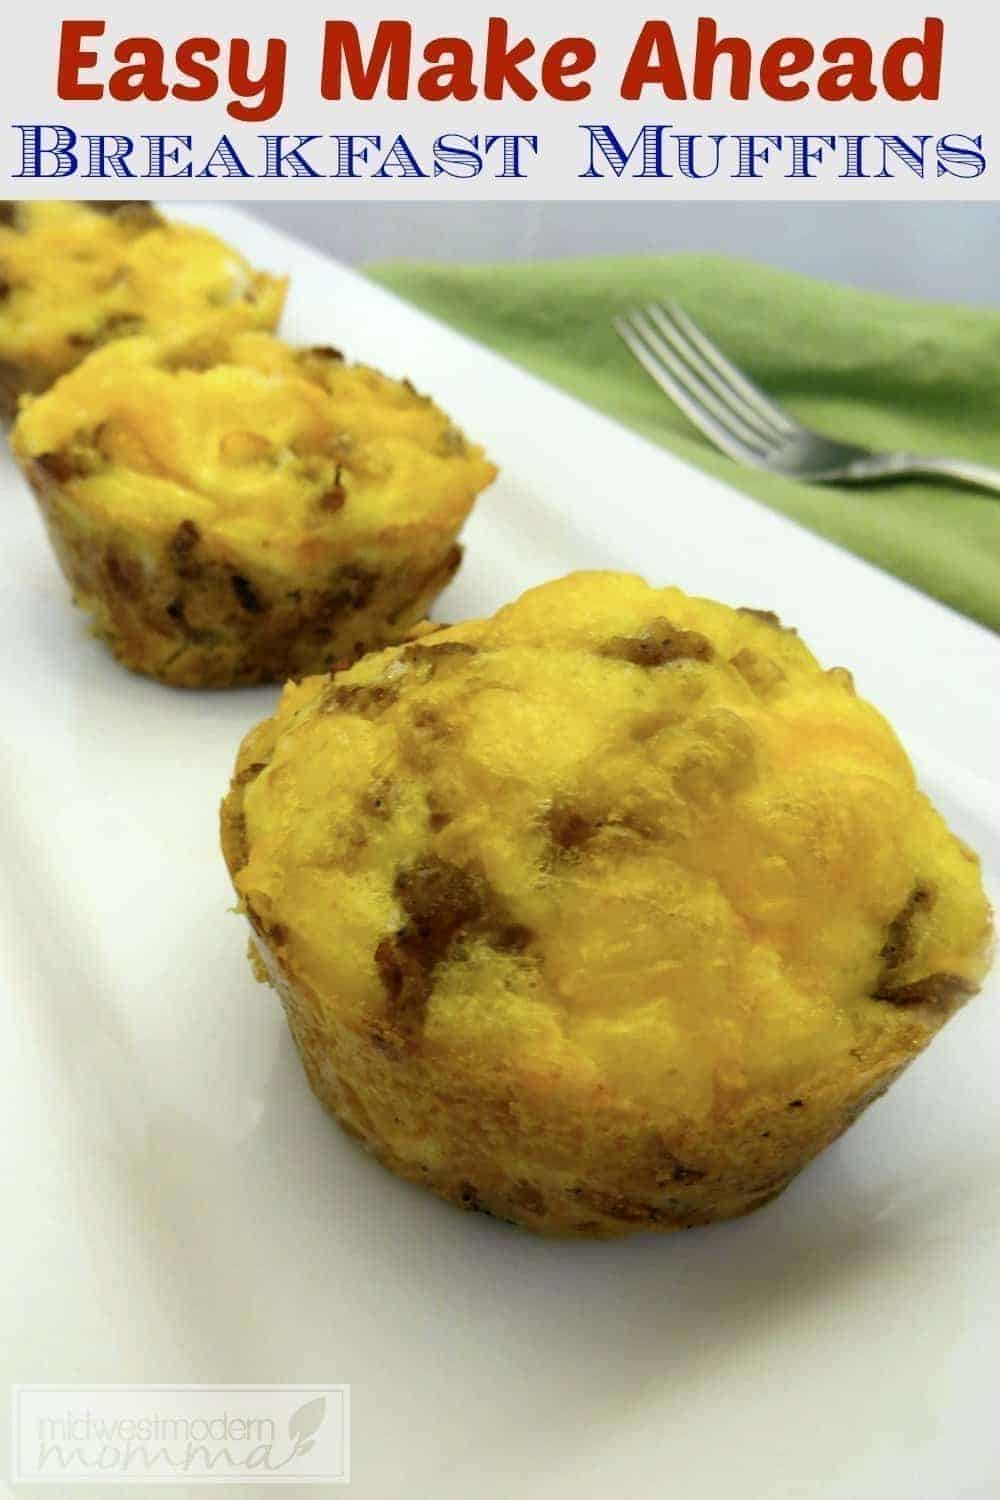 Breakfast Muffins | Breakfast is the most important meal of the day and these sausage, egg, and cheese make ahead breakfast muffins are a great solution for the on the go family.